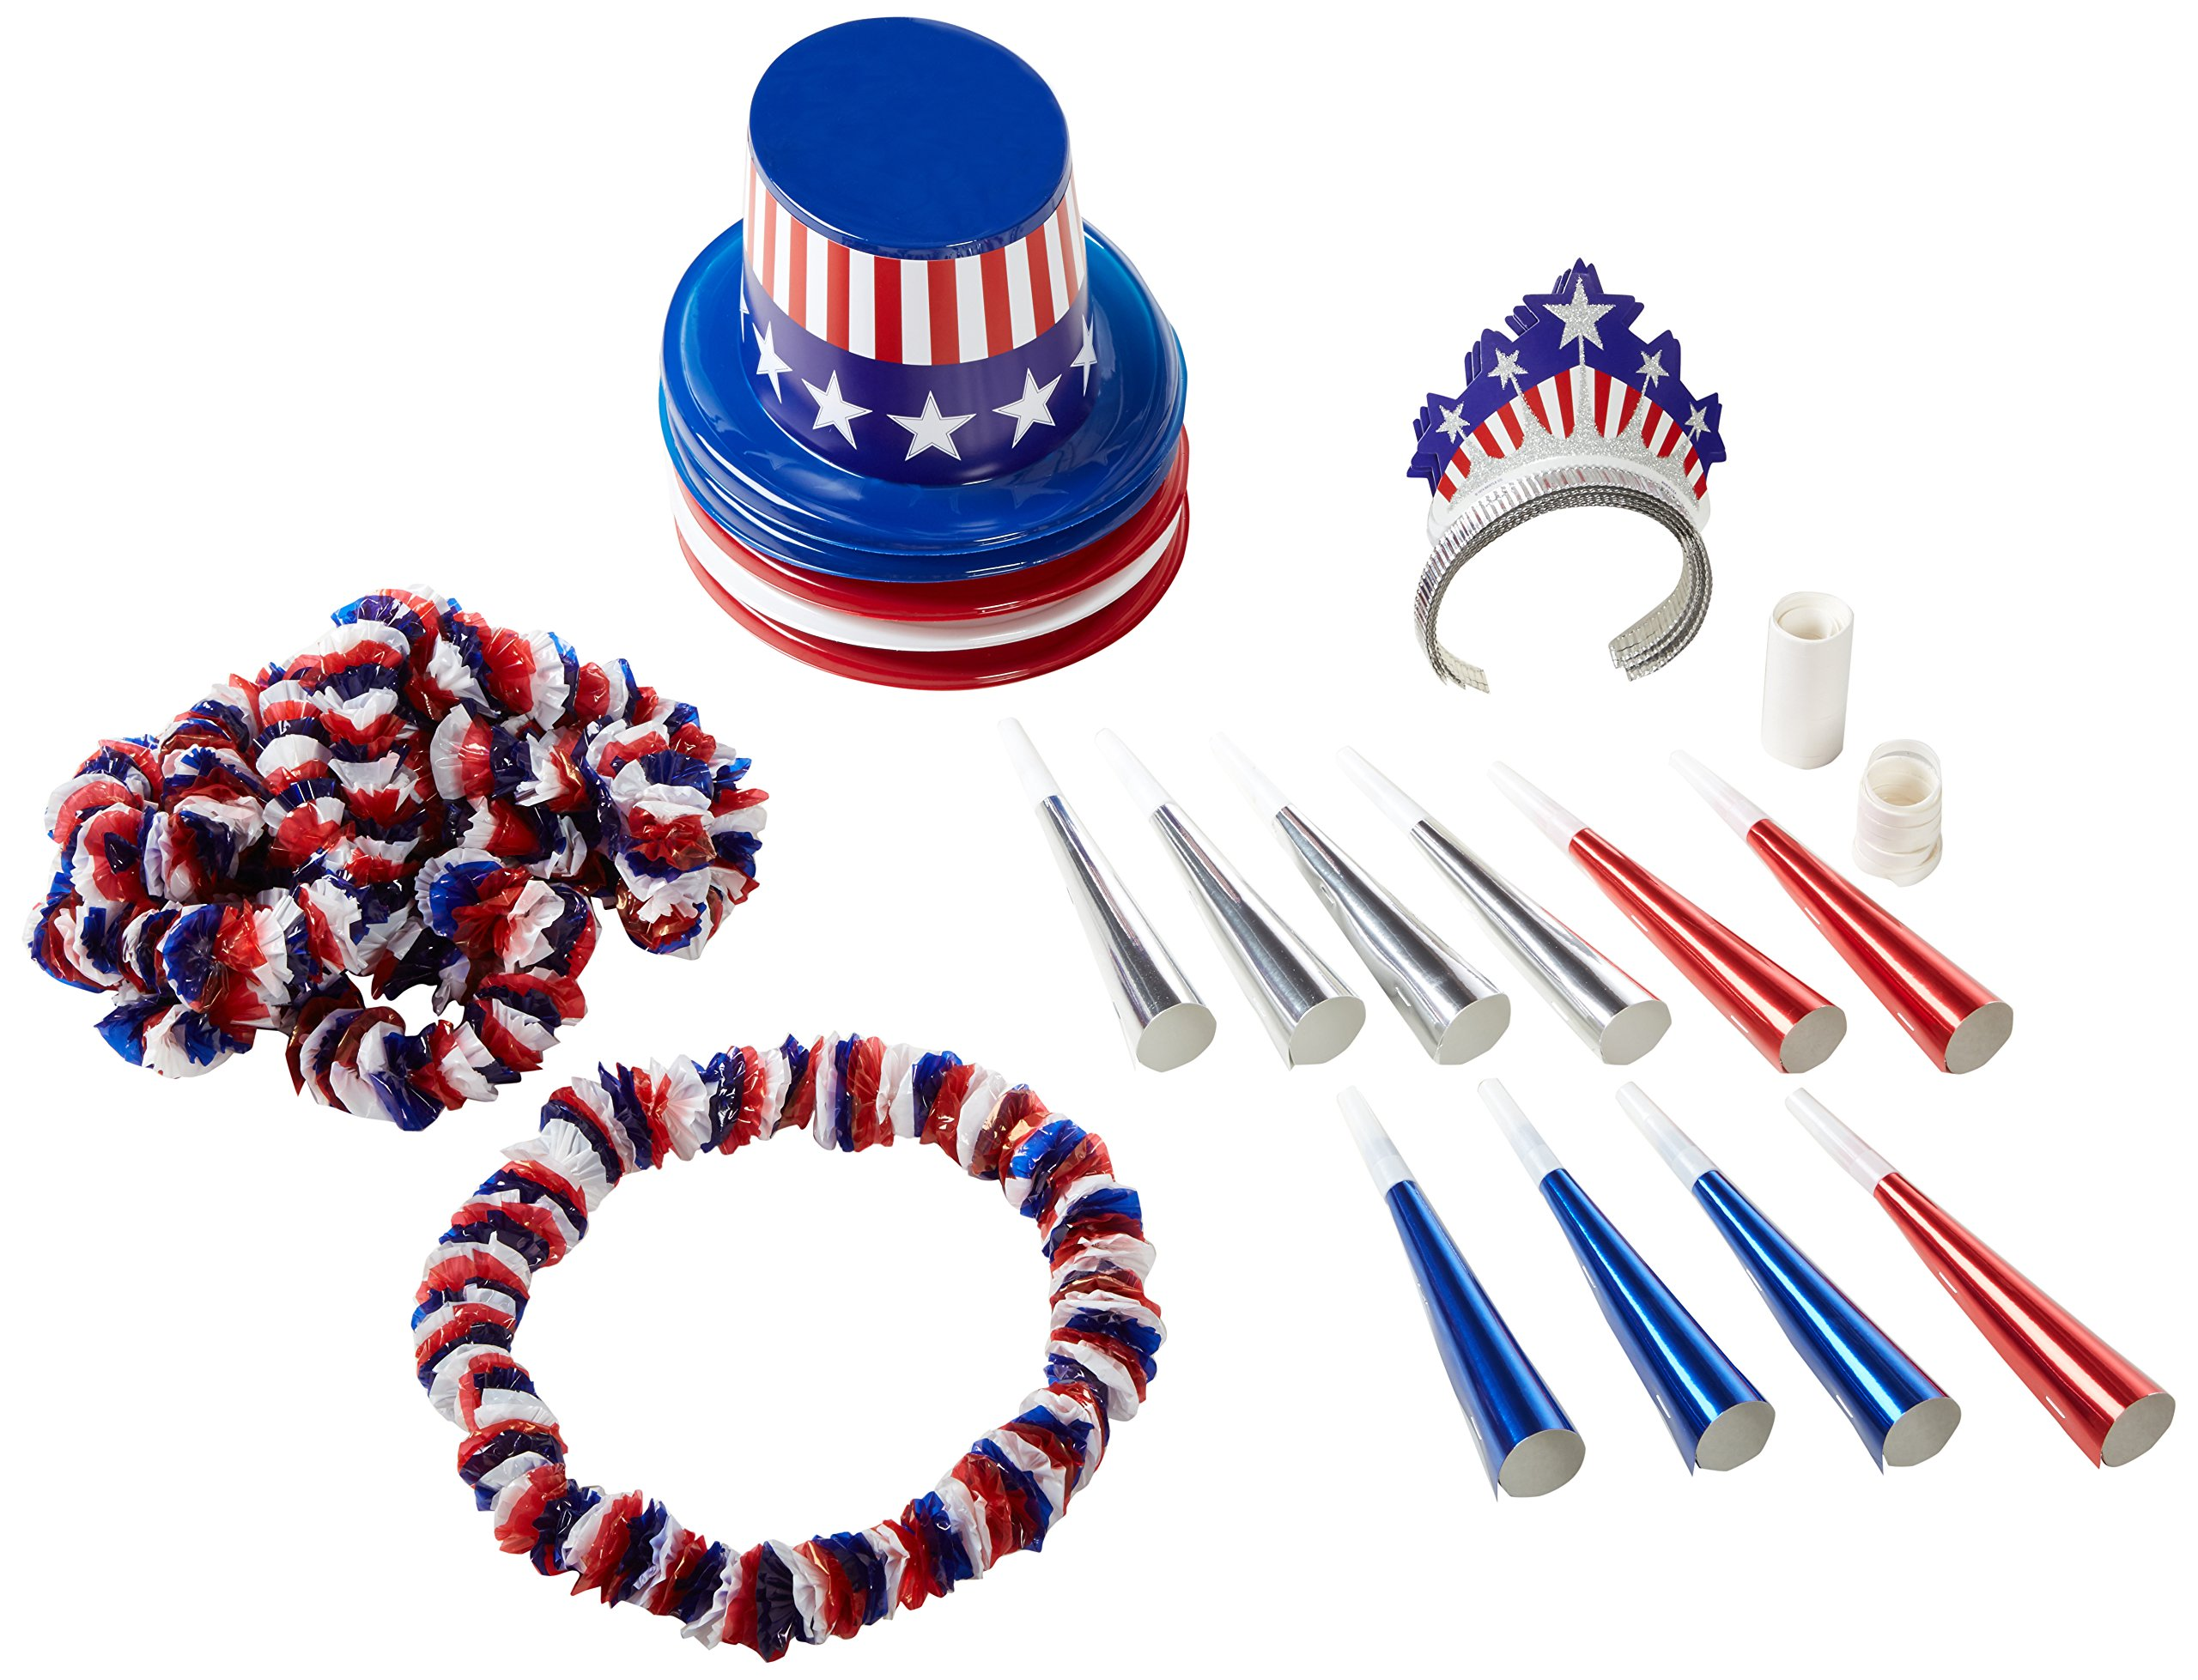 Spirit Of America Clear-View Asst for 10 Party Accessory (1 count) by Beistle